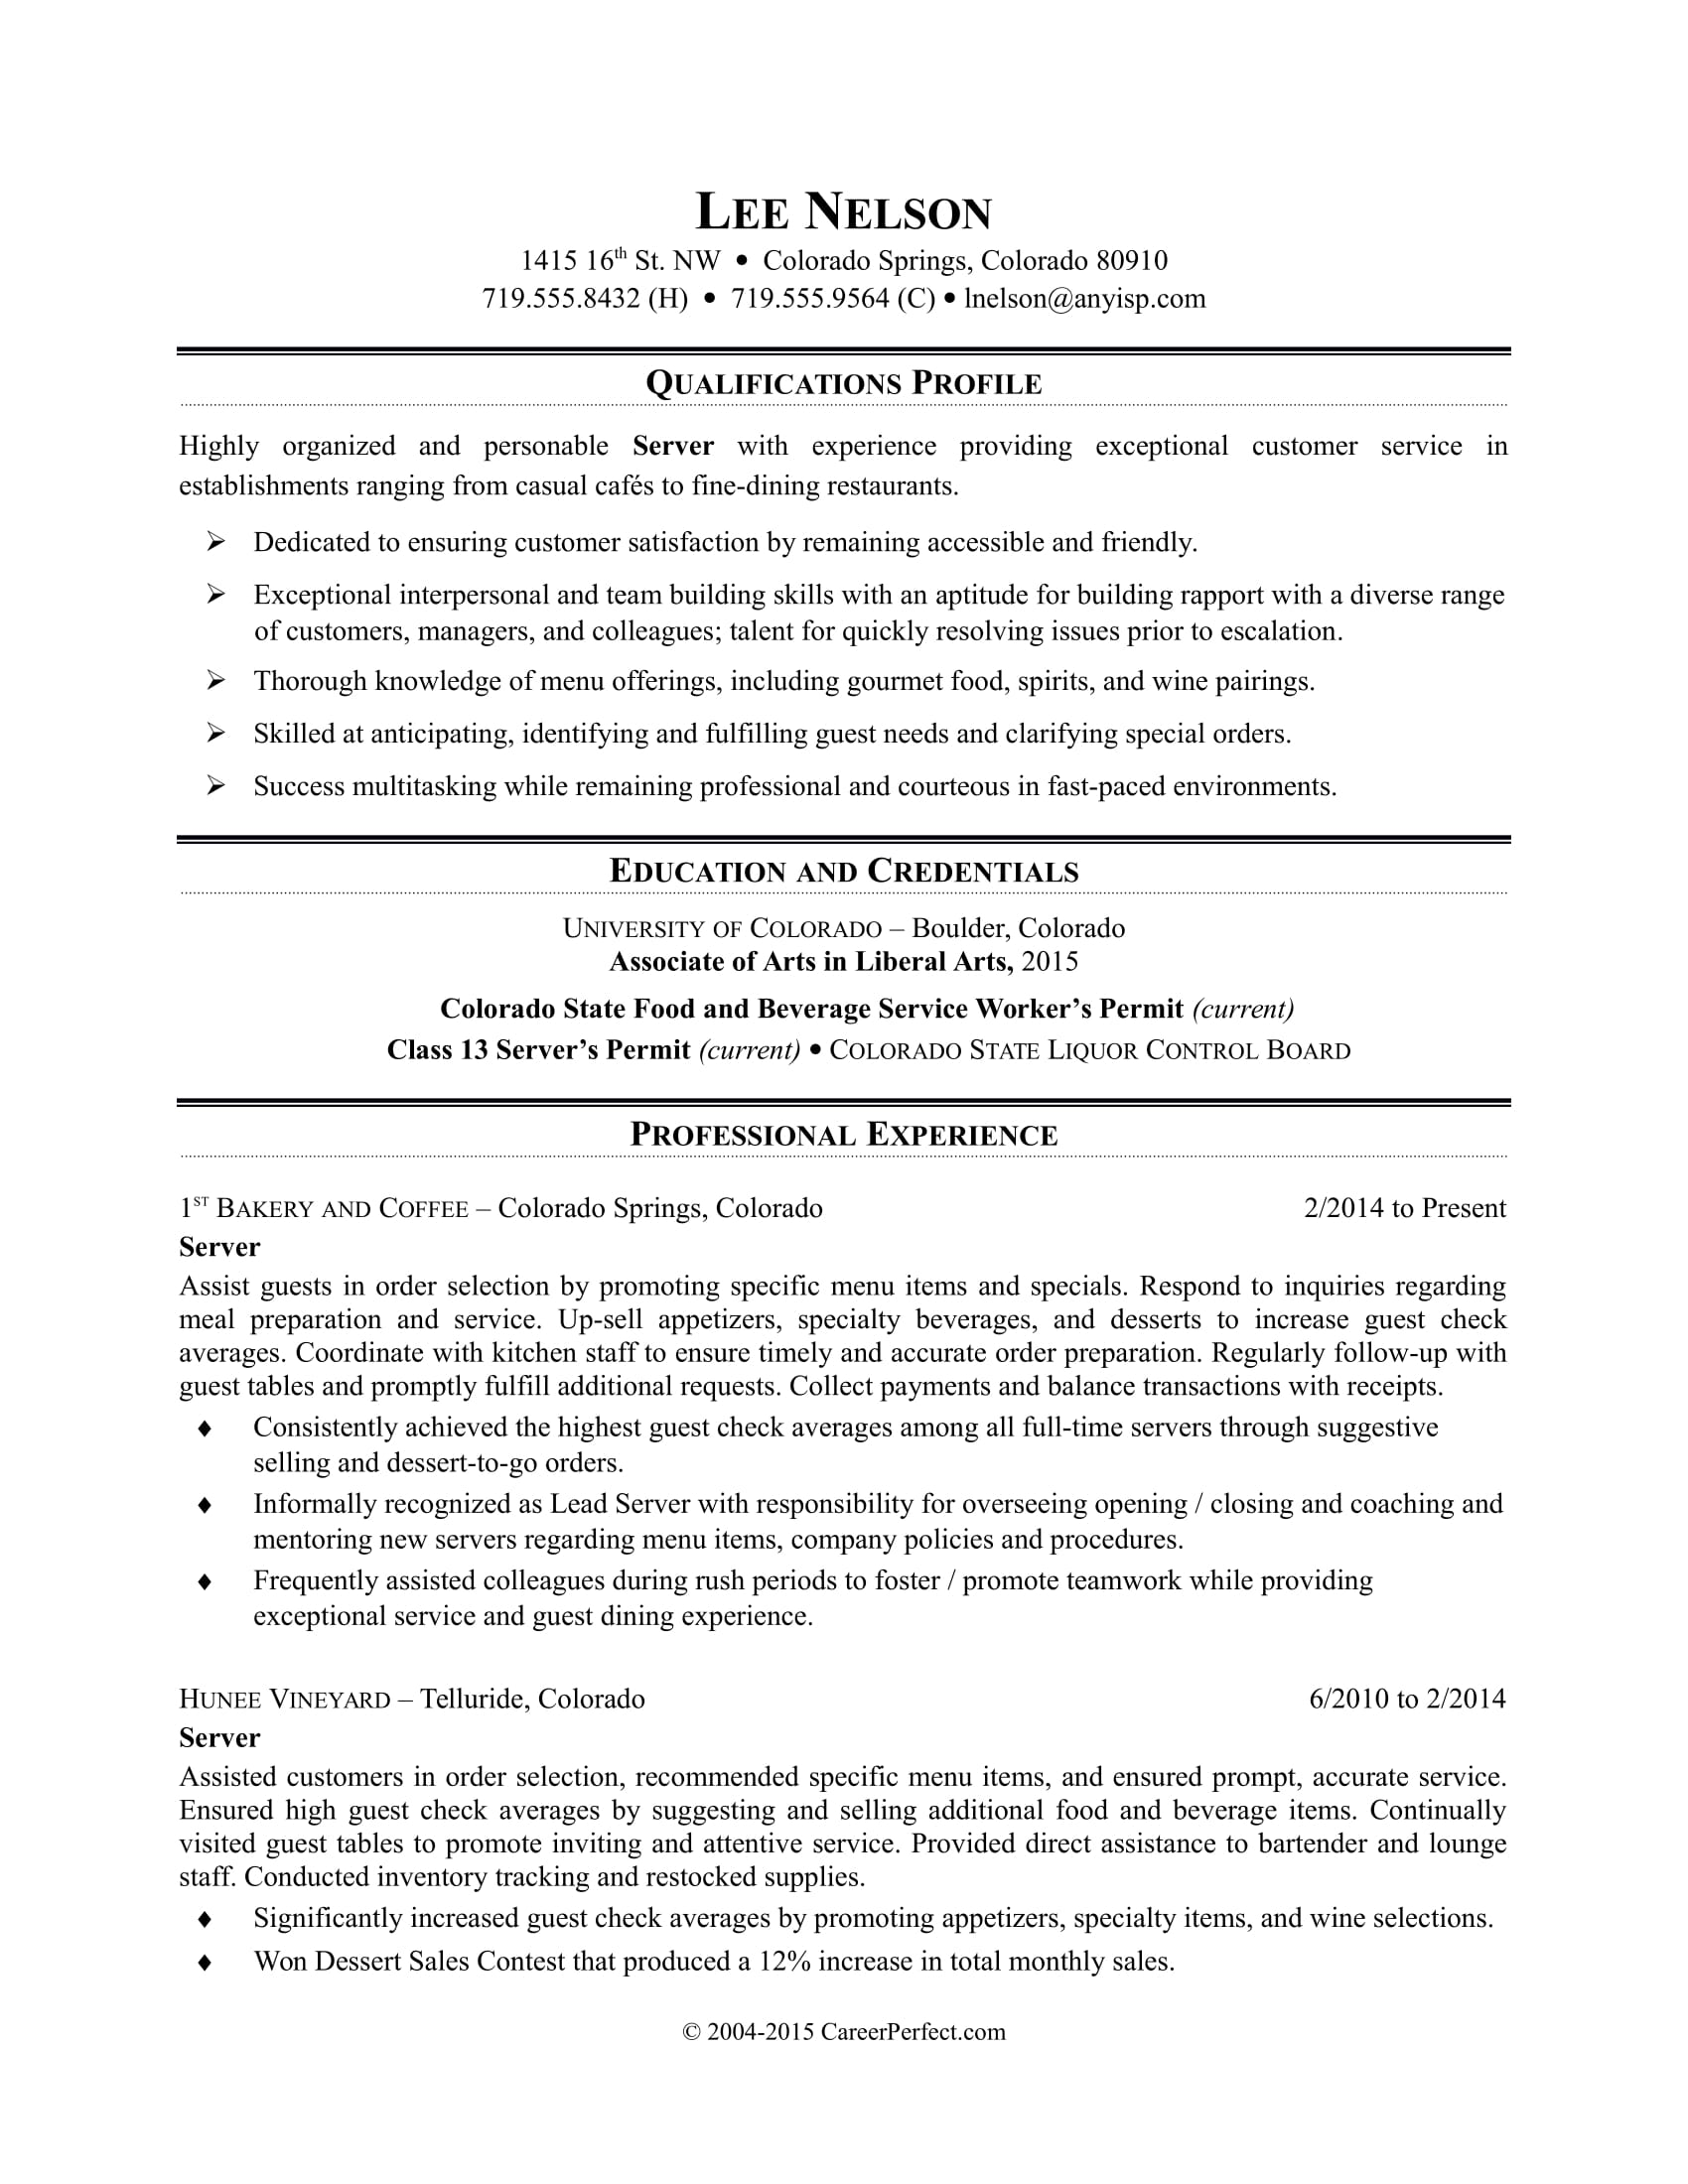 Sample Resume For A Restaurant Server  Resume Examples For Restaurant